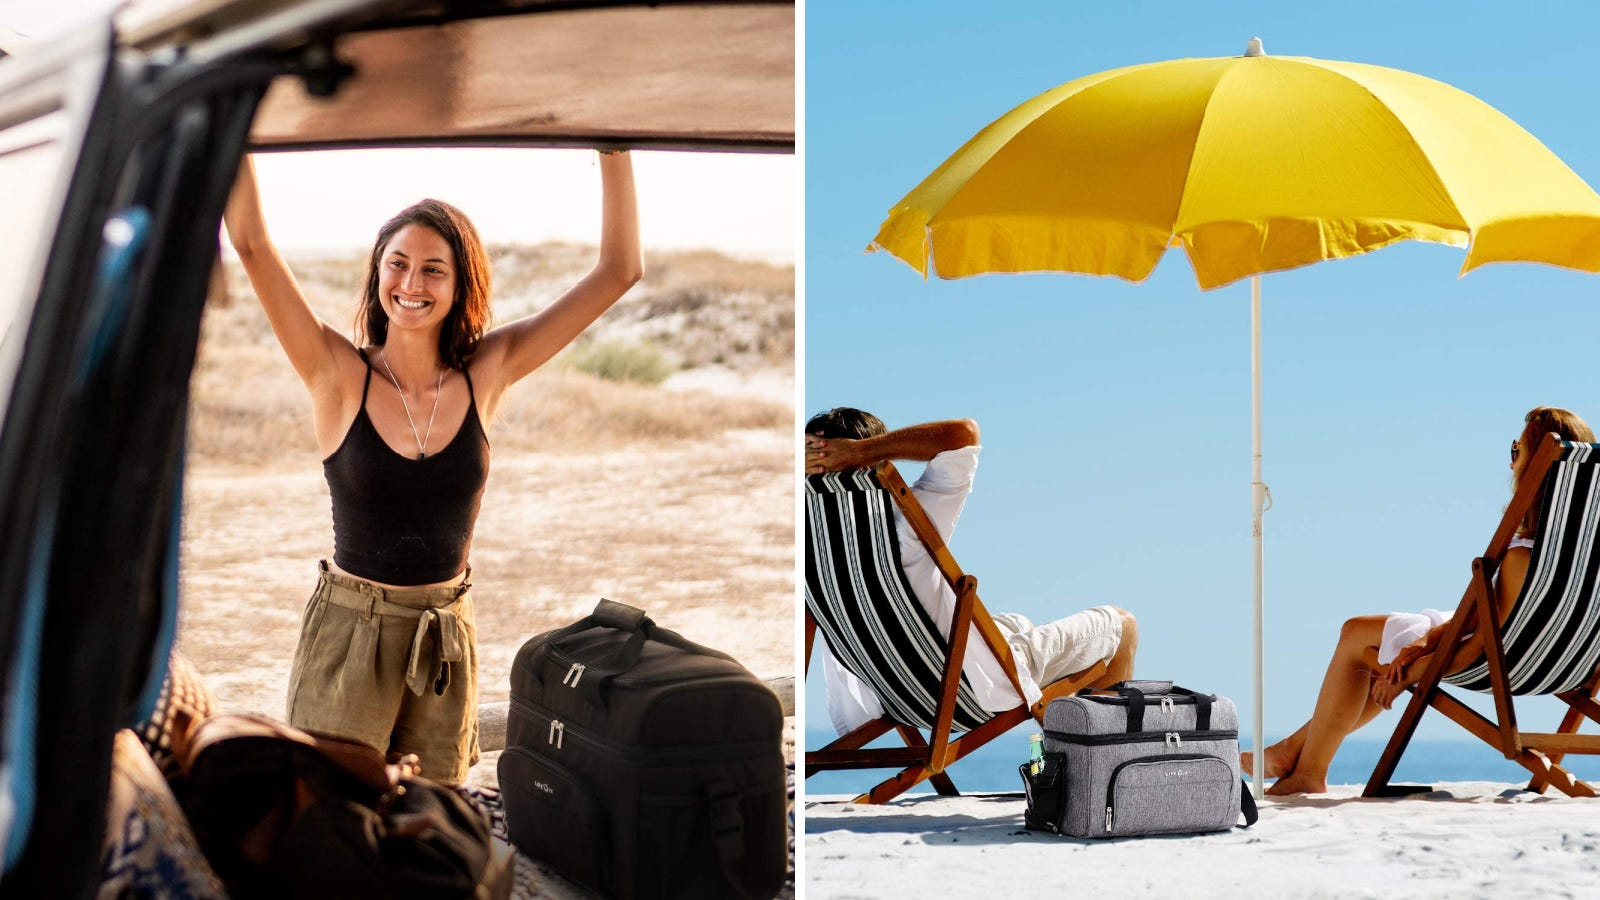 Two images: The left image features a women unpacking the back of her van with a Lifewit cooler in the trunk end, and the right image features two adults enjoying the warmth of summer at the beach with a gray Lifewit cooler alongside of them.